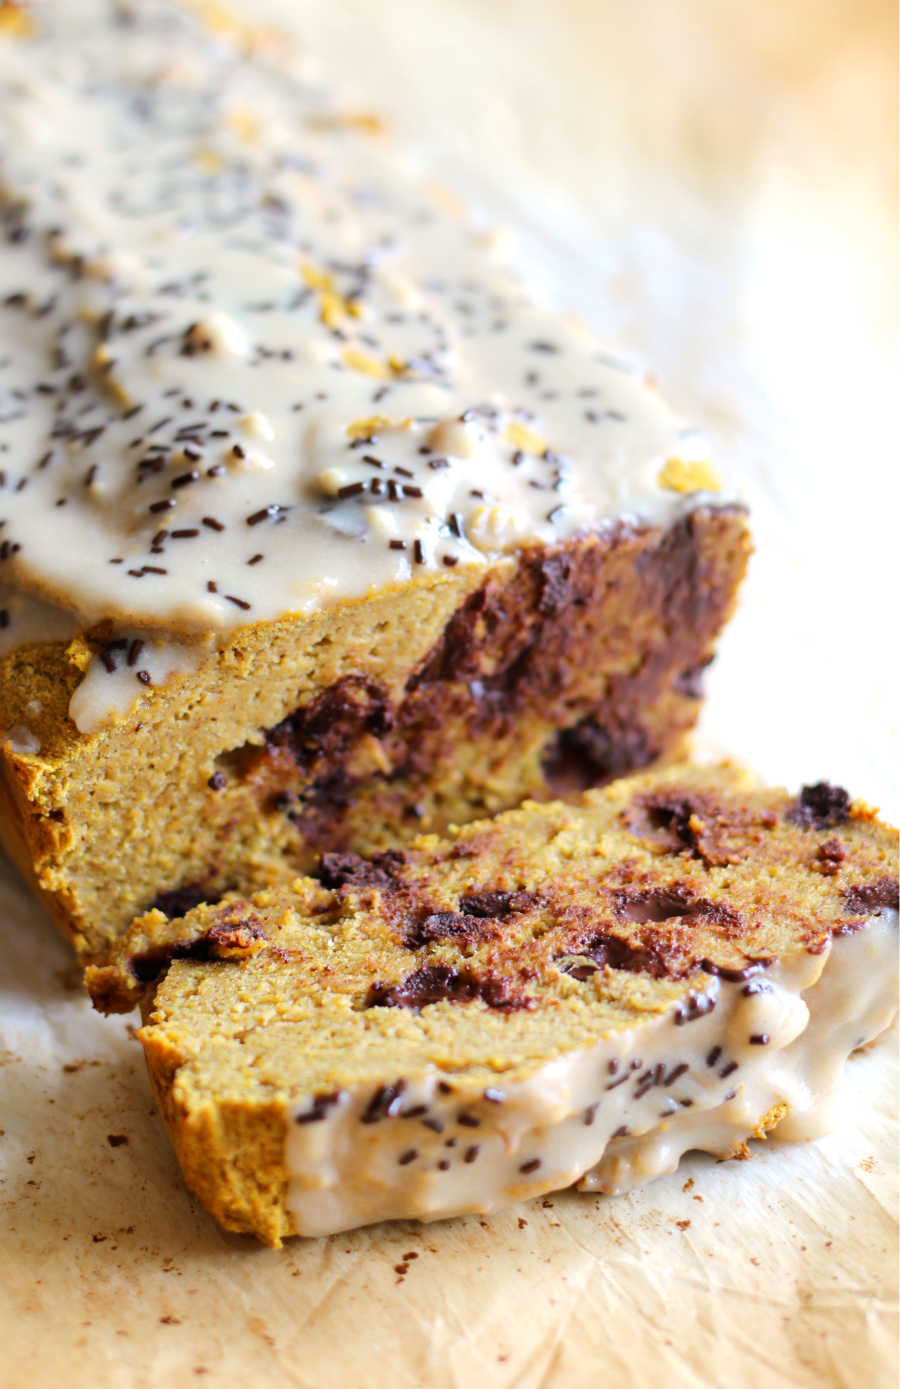 Tahini Chocolate Chip Pumpkin Bread | Strength and Sunshine @RebeccaGF666 A seasonal Fall classic with some mouthwatering additions! This Tahini Chocolate Chip Pumpkin Bread recipe will have you ready for autumn in a snap! Gluten-free, nut-free, and vegan, this quick bread recipe is not your average baked good! Perfect for breakfast, snacking, or dessert!